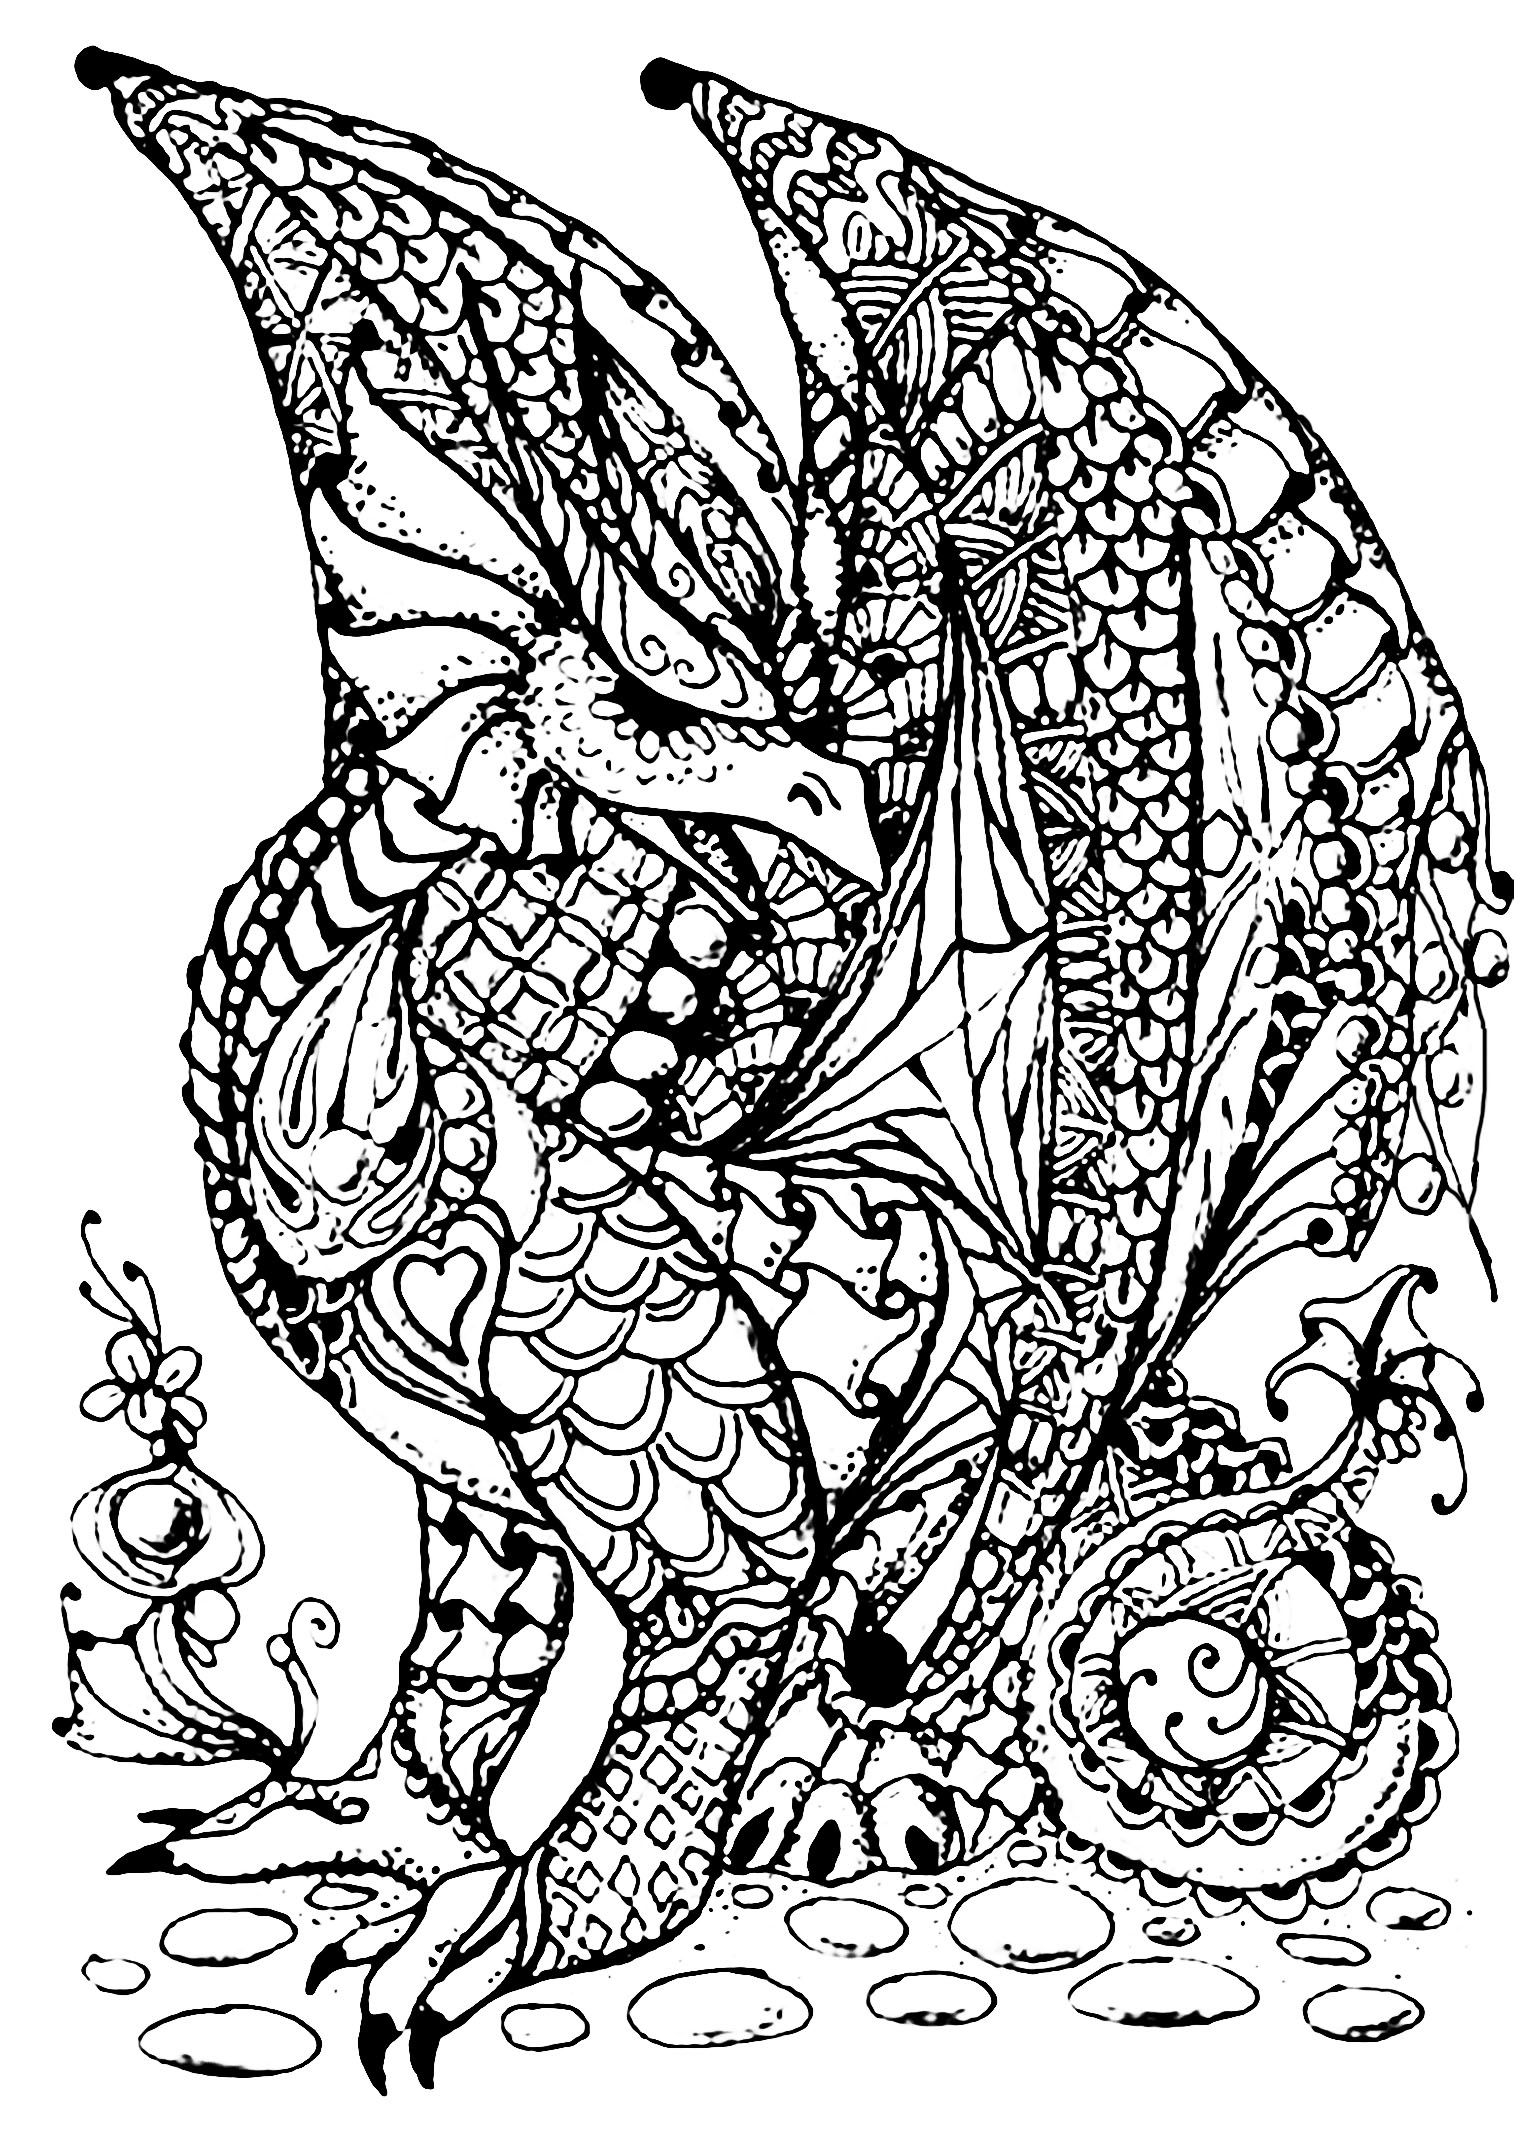 d is for dragon coloring page dragon coloring page by strecno on deviantart d for dragon coloring page is